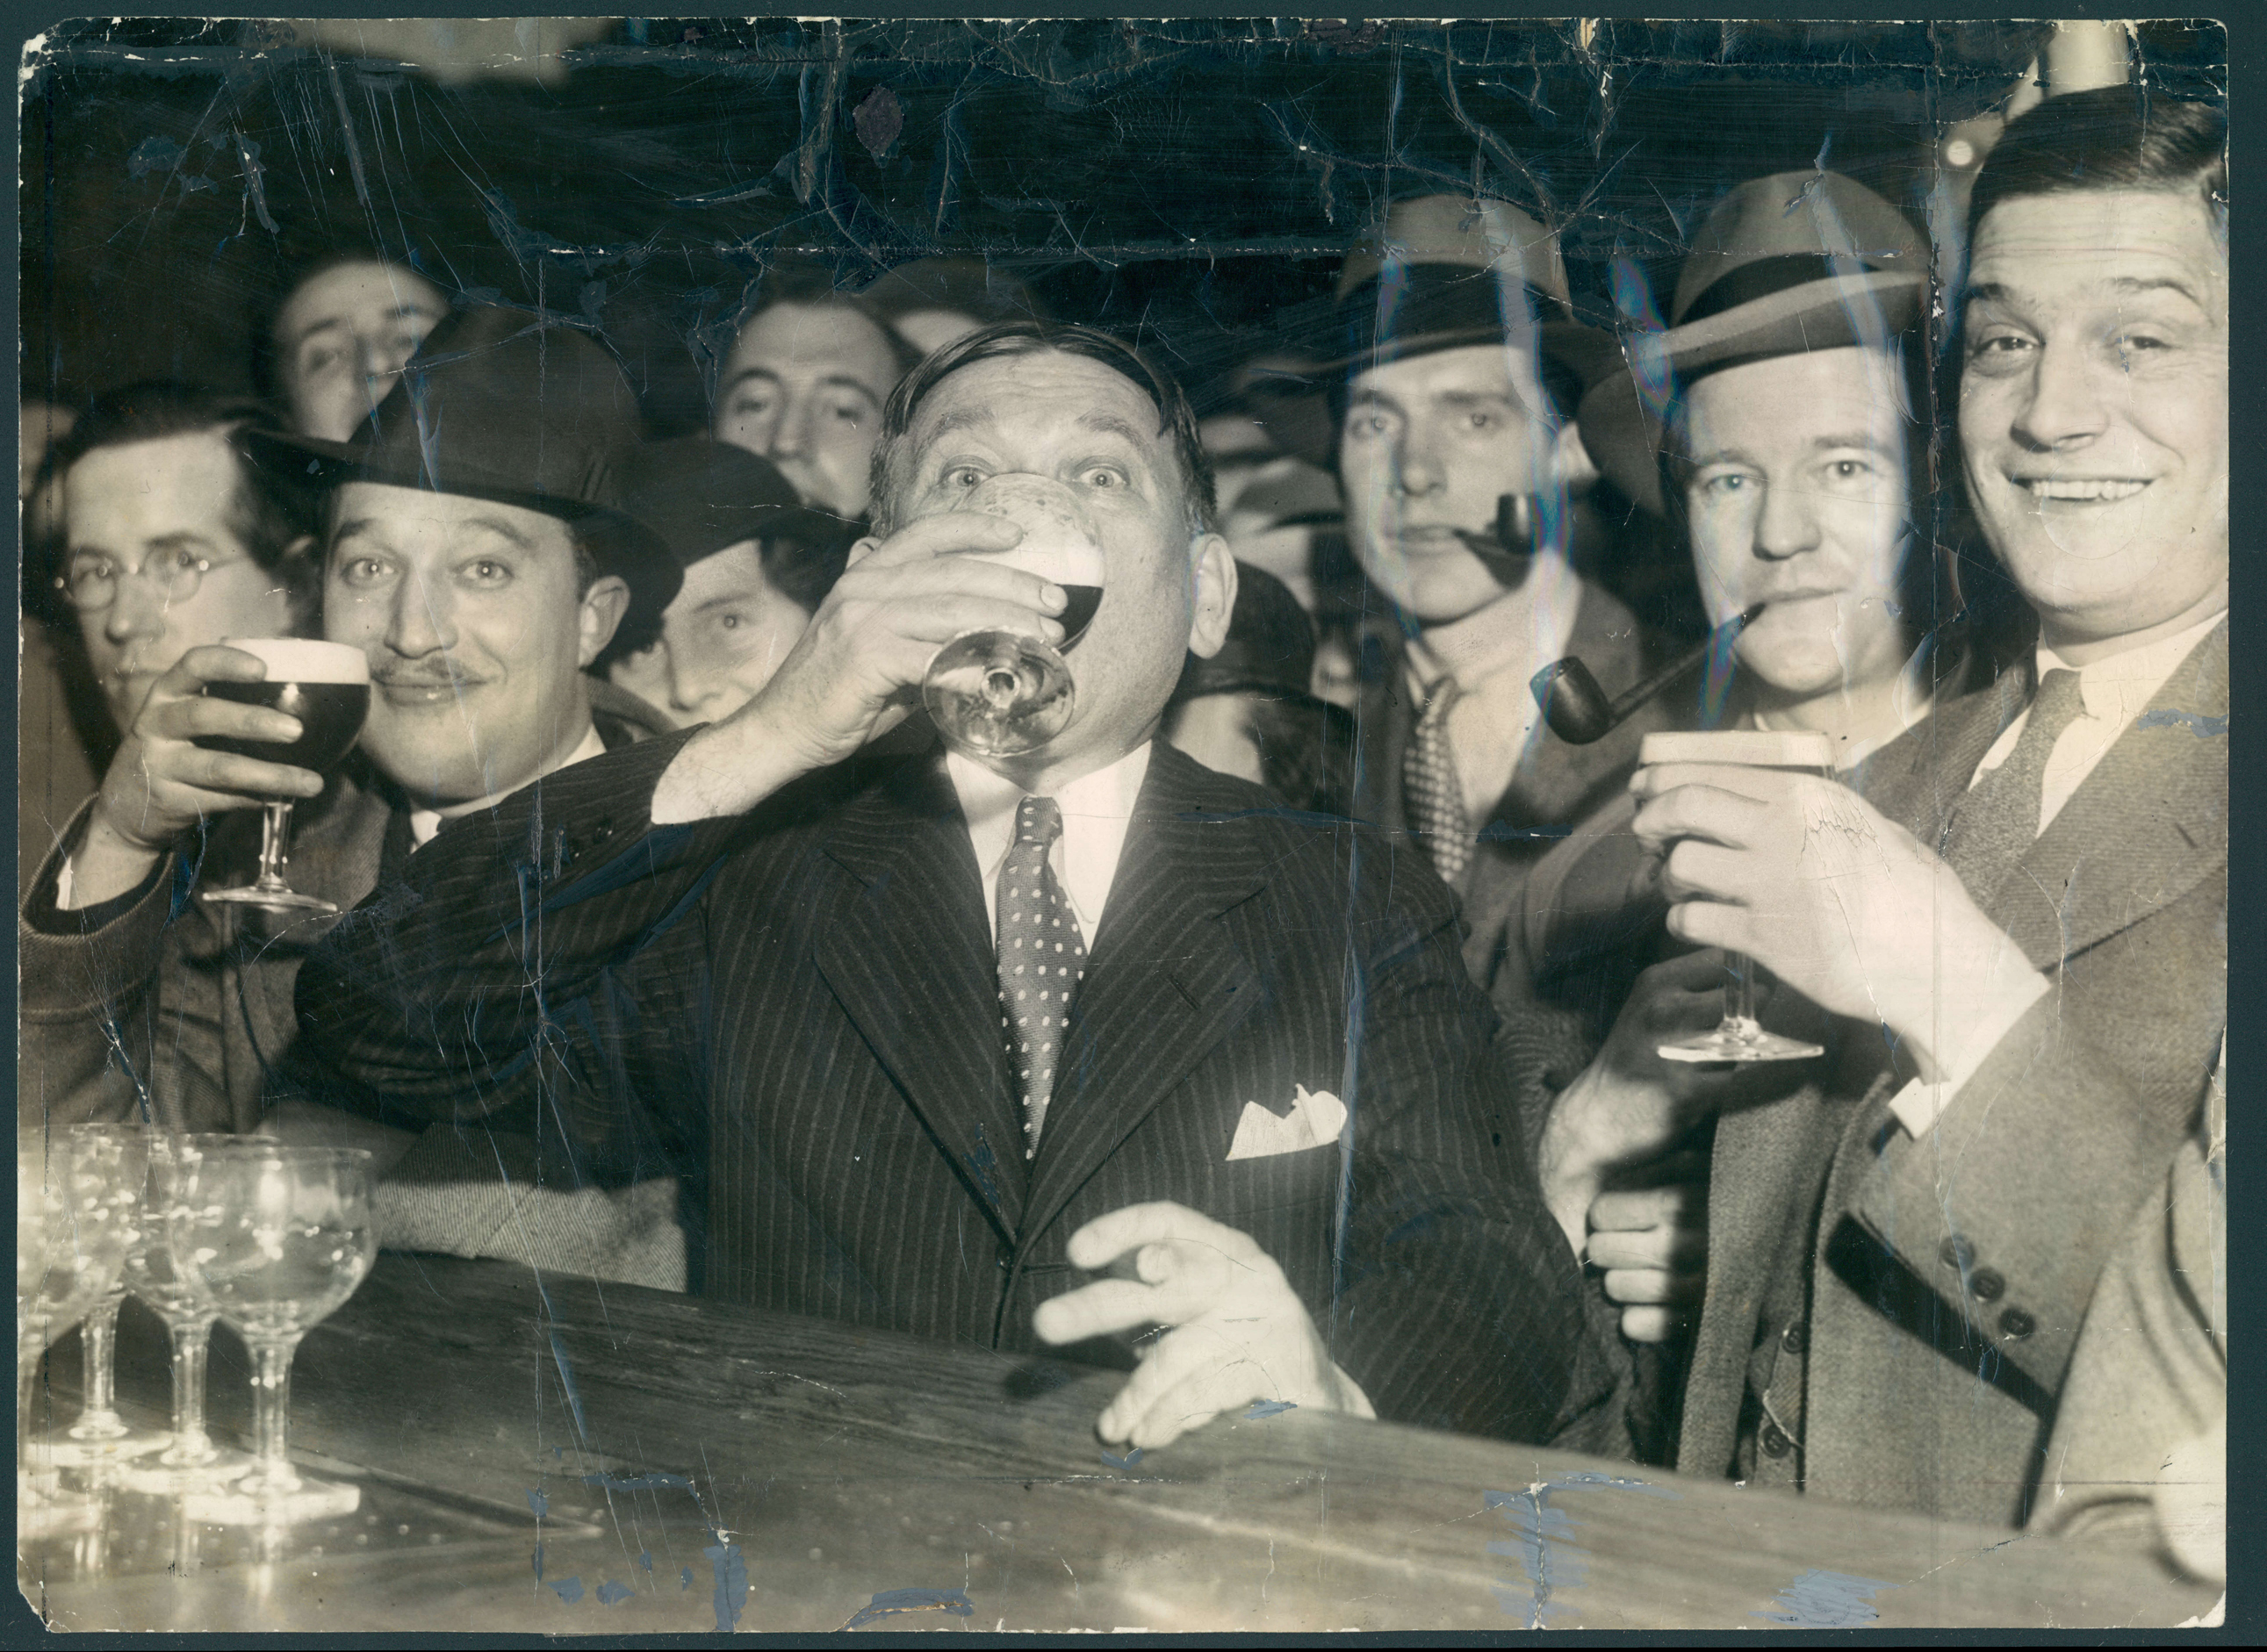 80 years later: The anniversary of Prohibition repeal